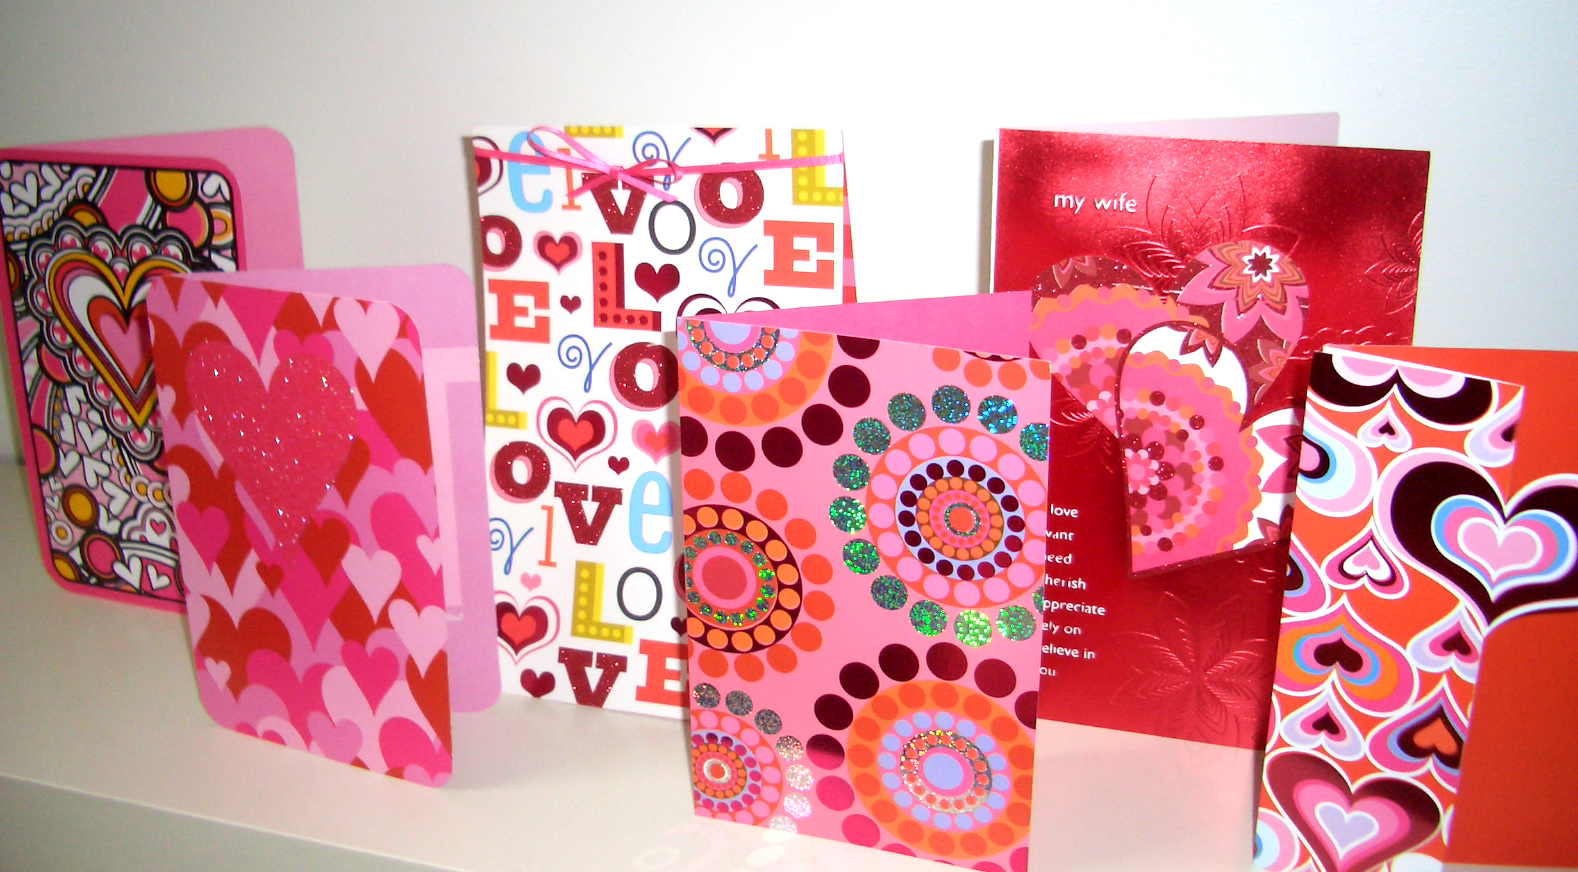 American greetings 2 off 2 valentines day cards southern savers american greetings kristyandbryce Choice Image